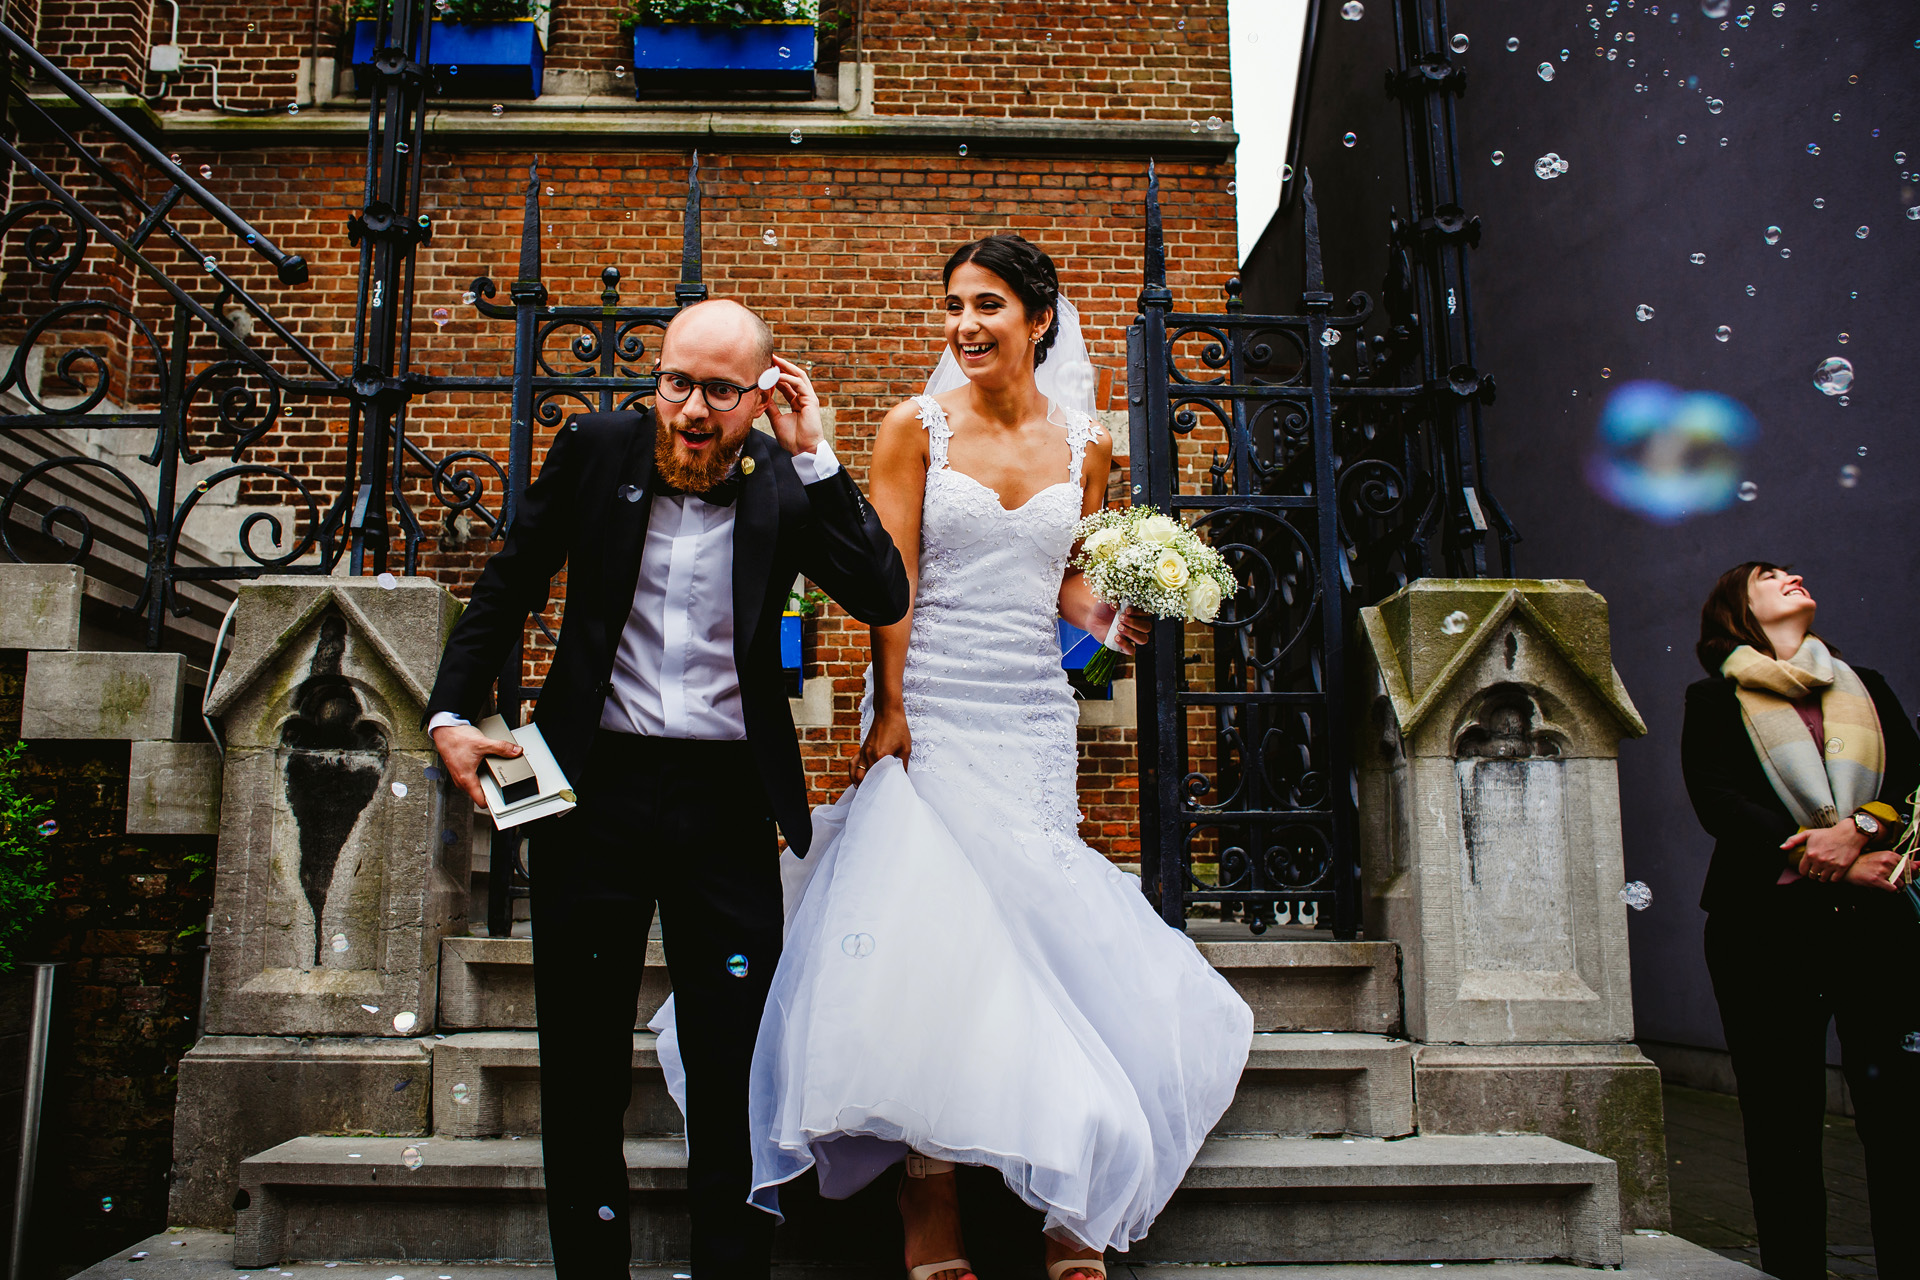 Antwerp, Belgium Elopement Photographer | After the ceremony, the newlyweds exit the city hall